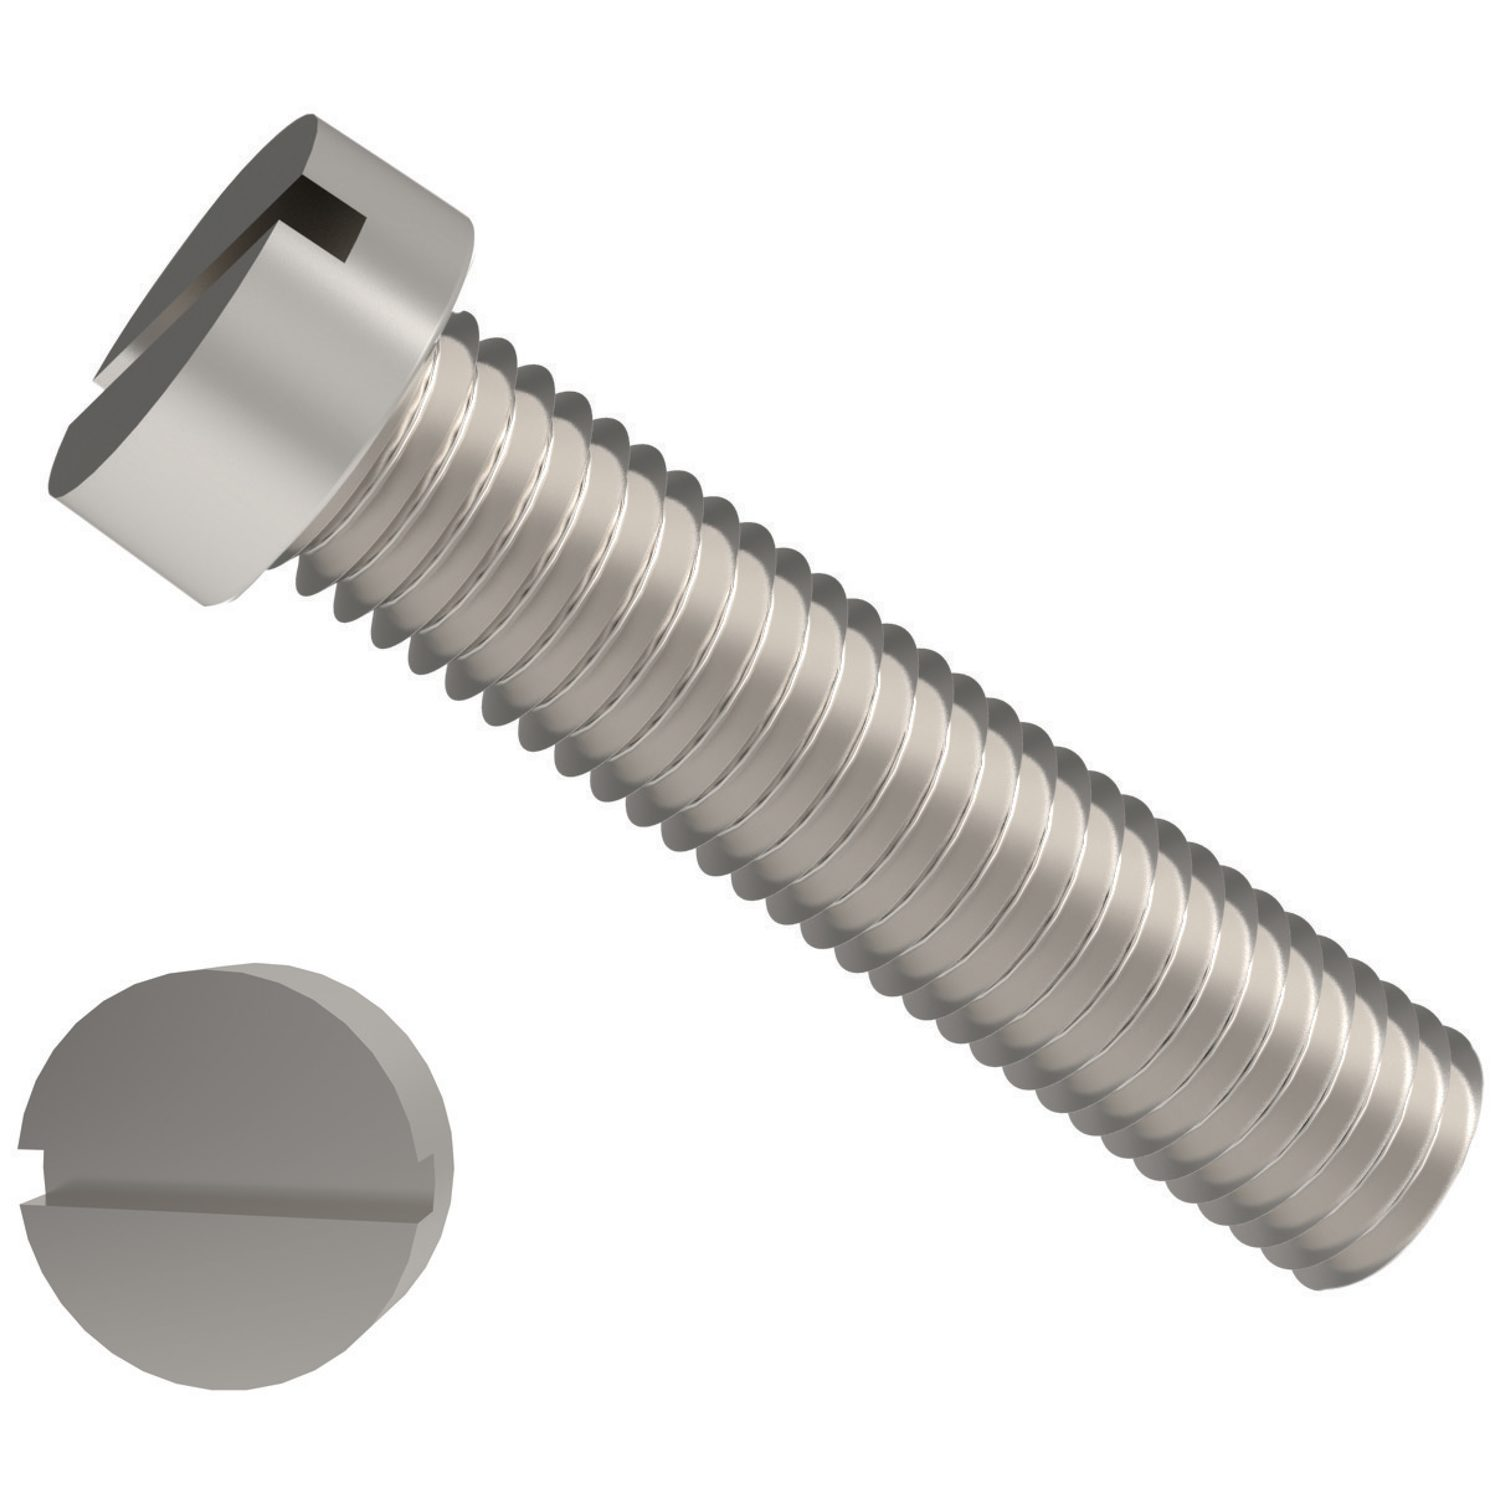 Slot Cheese Head Screws Zinc-plated steel slot cheese head screws. Sizes range from M1,6 to M10. Manufactured to DIN 84.